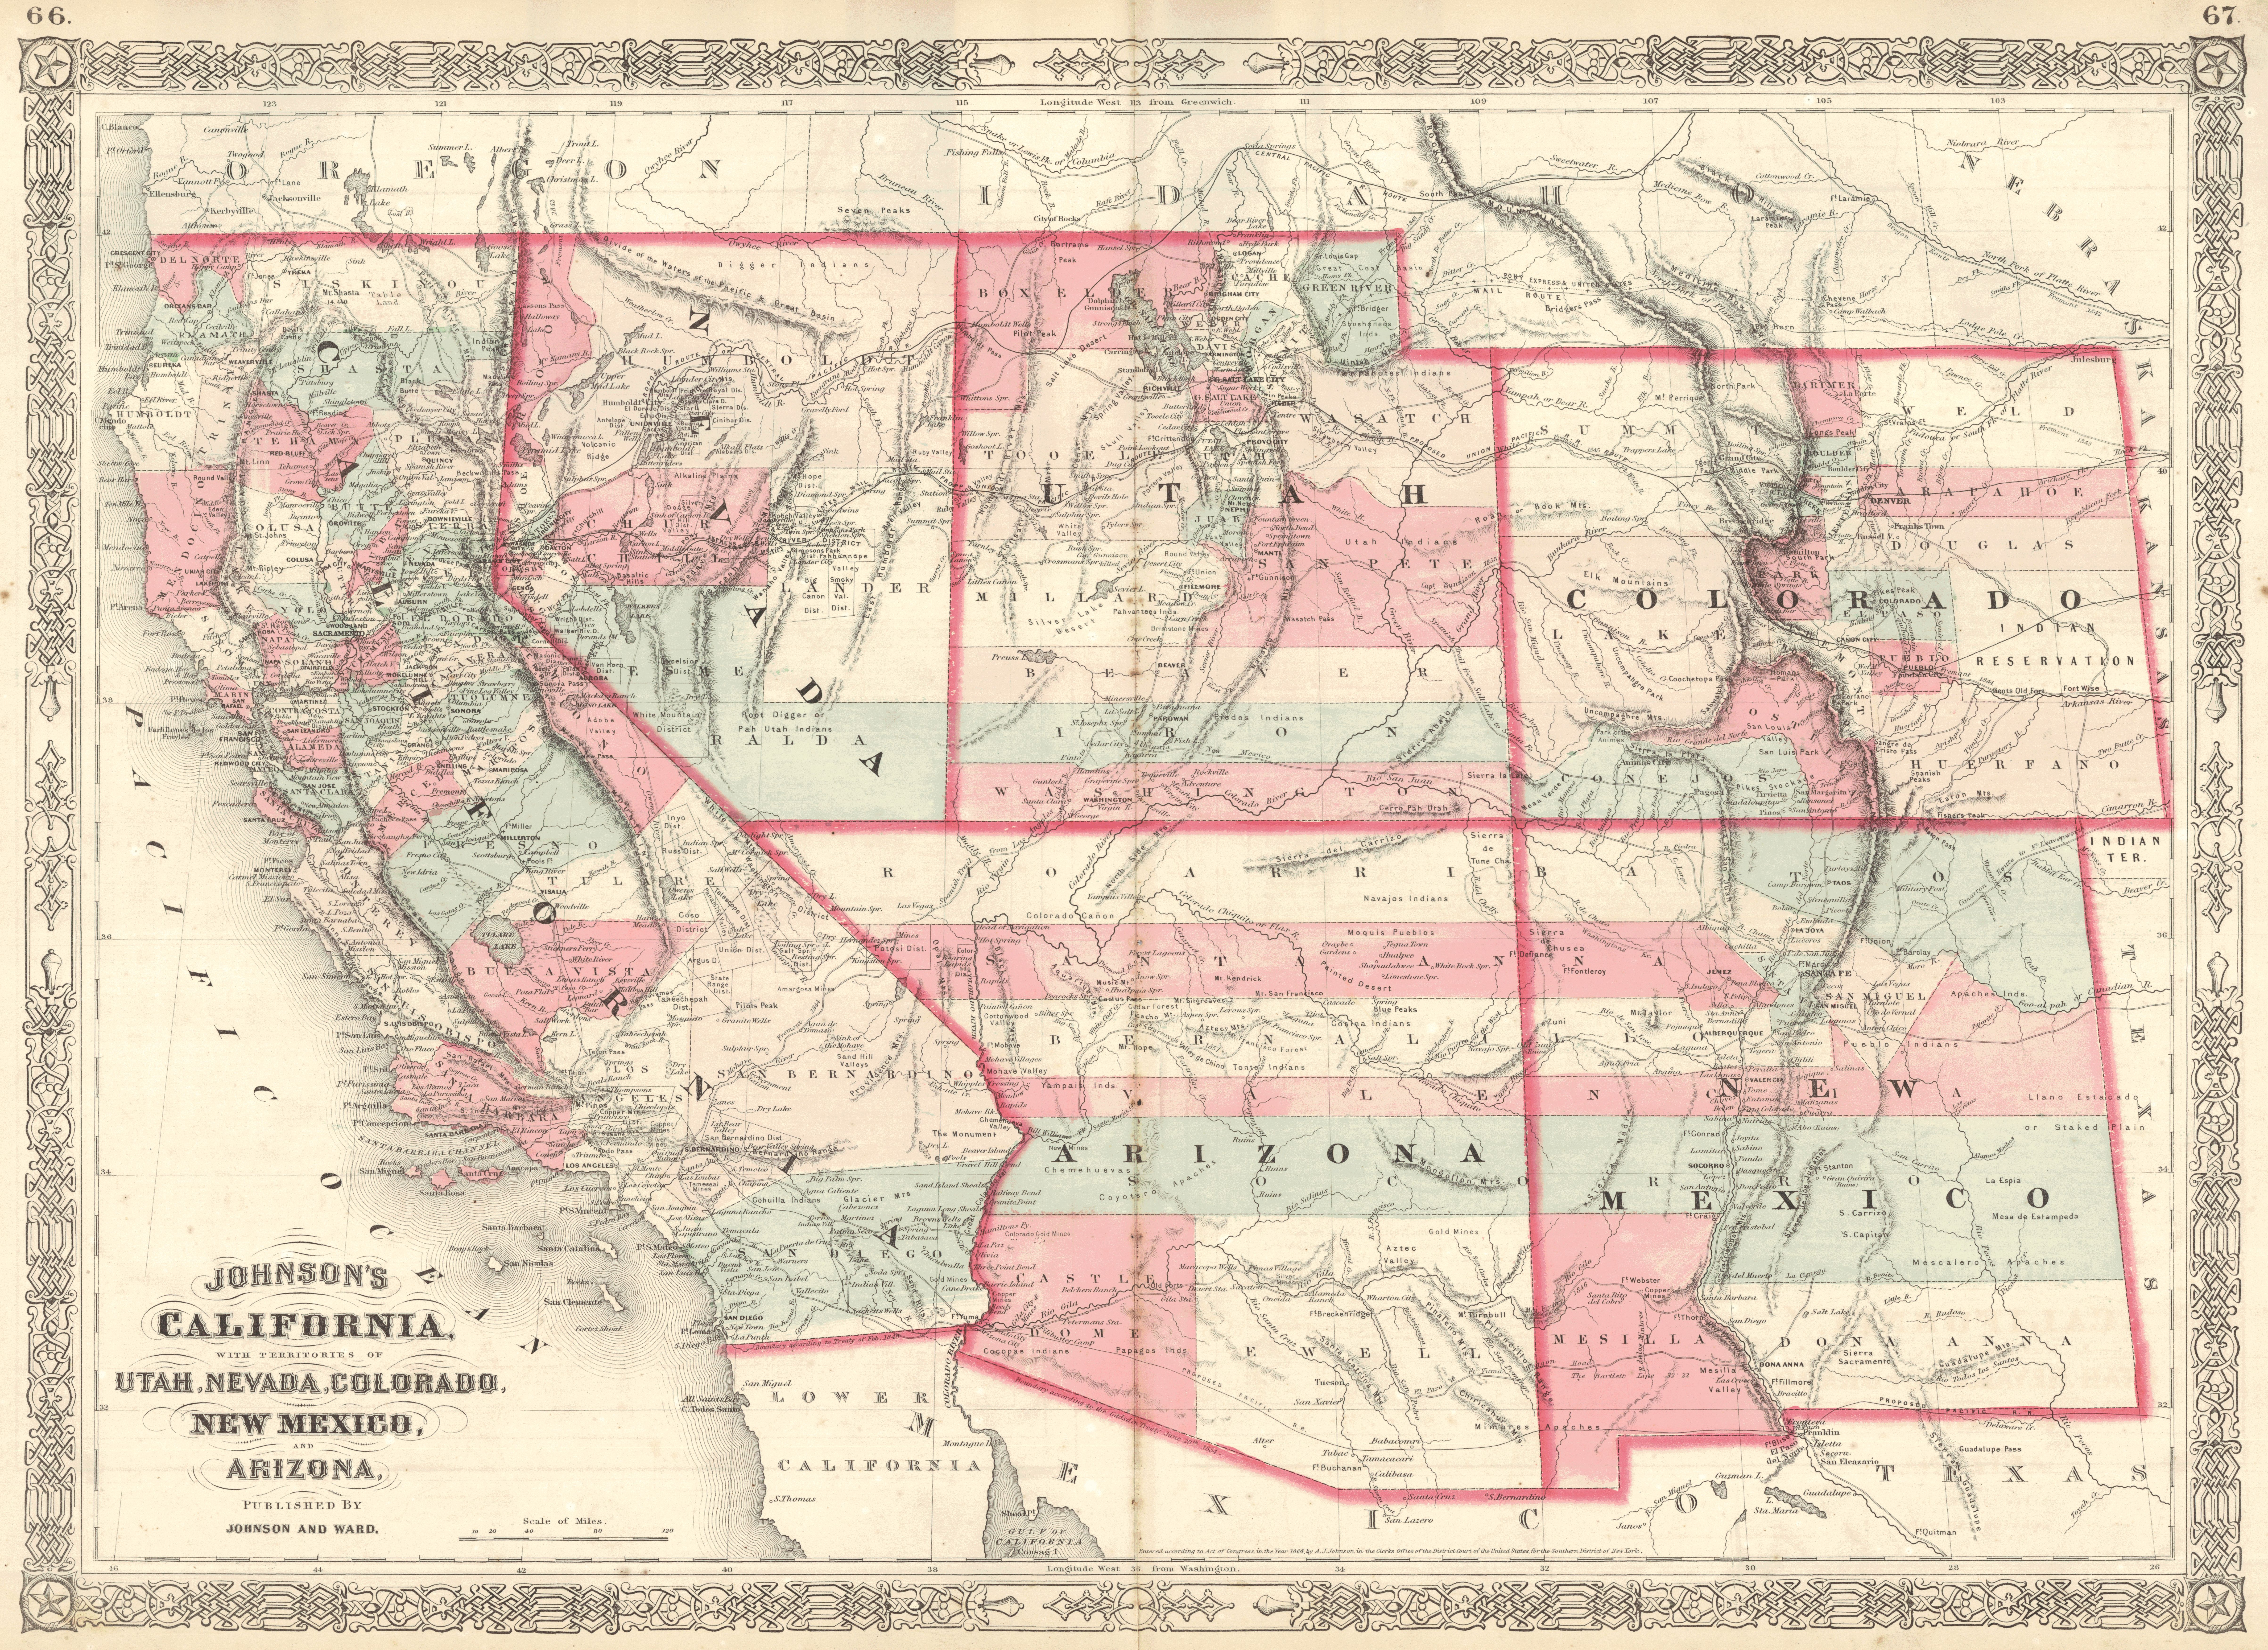 Maps Antique United States US States Arizona - Map of arizona and new mexico